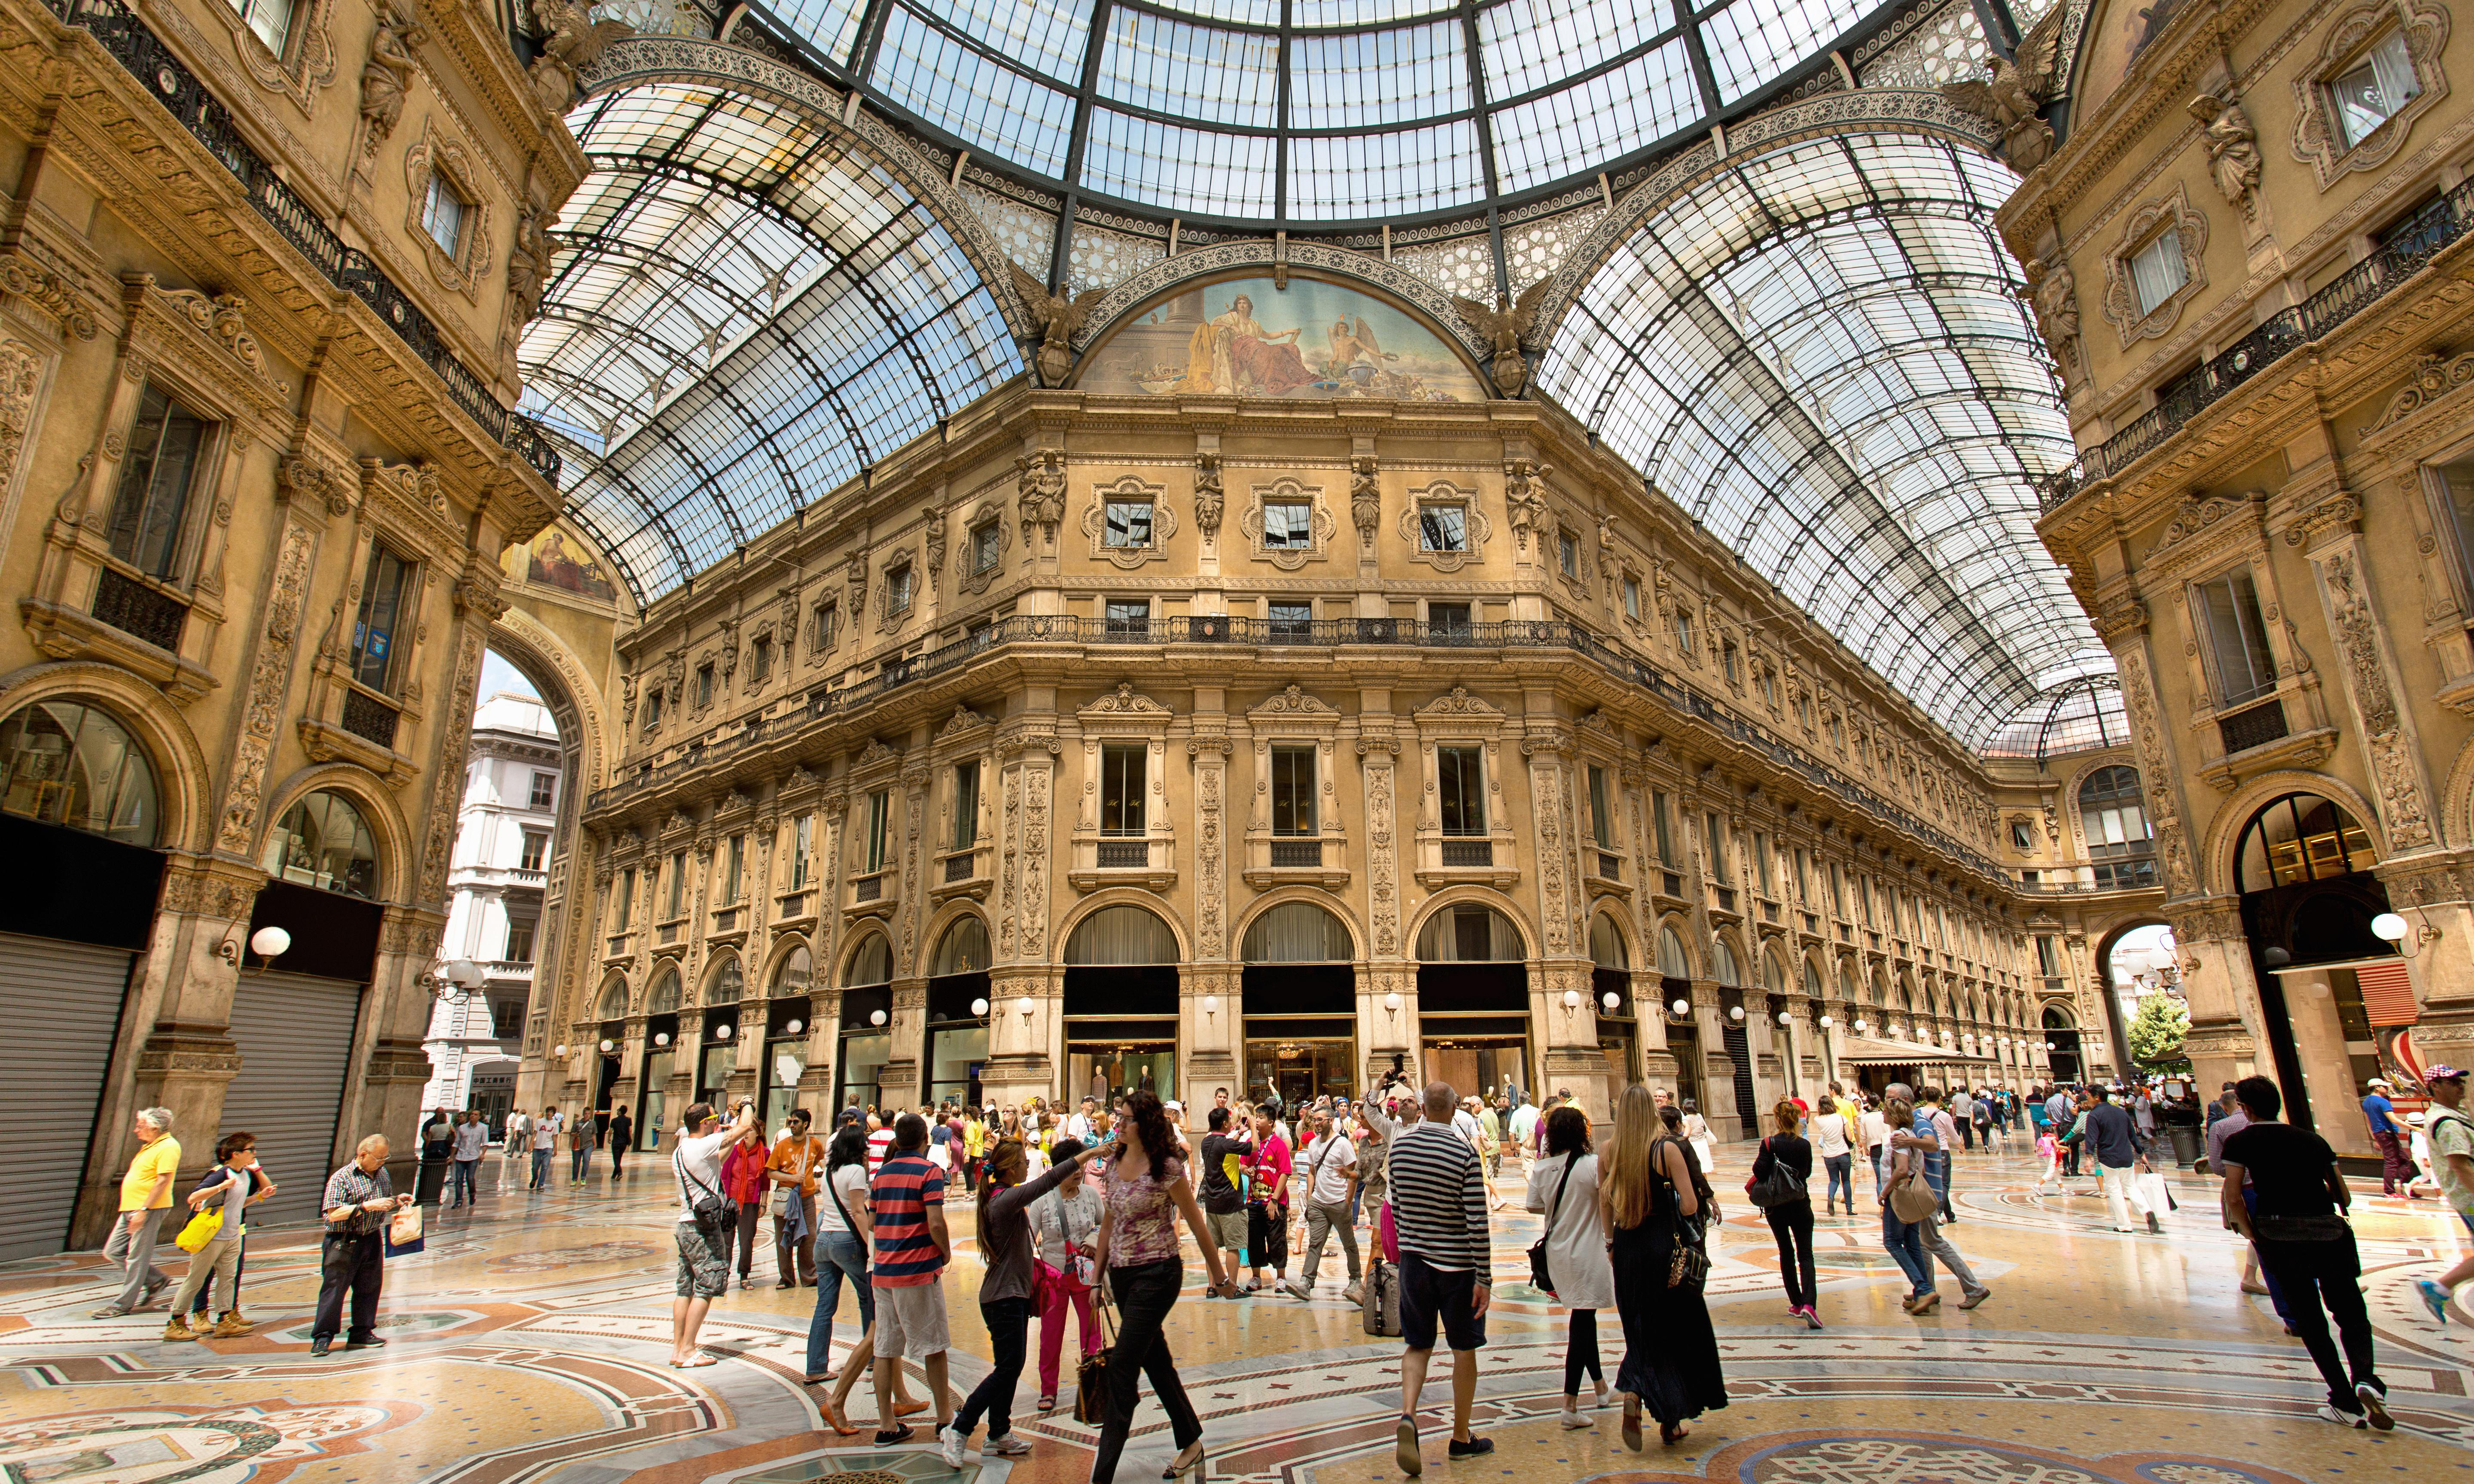 Dior and Fendi to pay record rents for space in Milan's Galleria mall